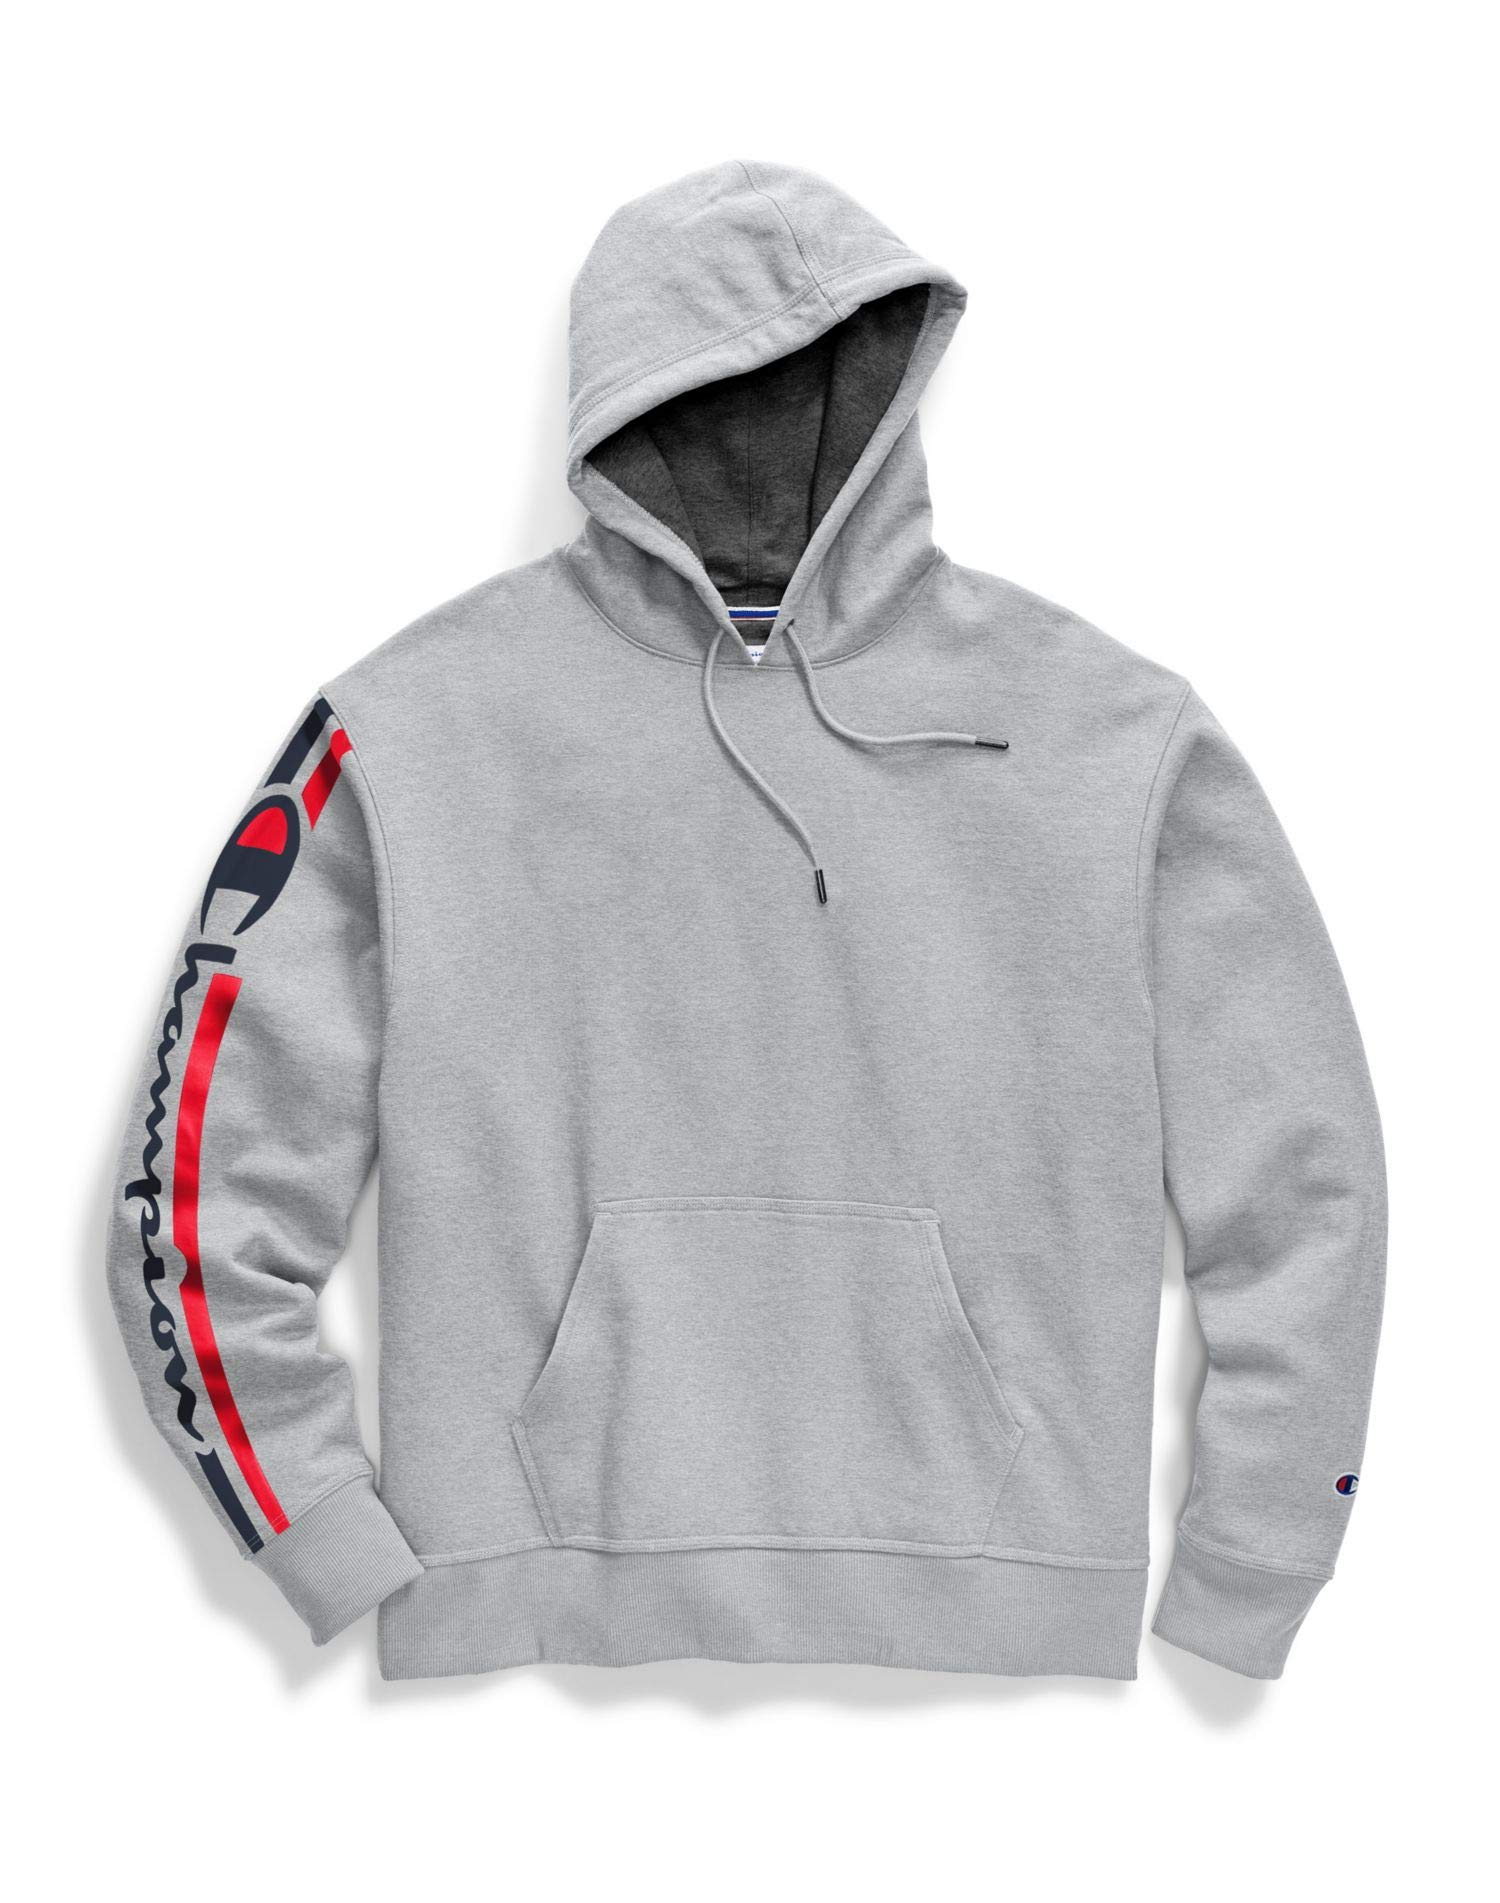 Champion Mens Powerblend Pullover Hoodie, XL, Vertical Oxford Grey by Champion